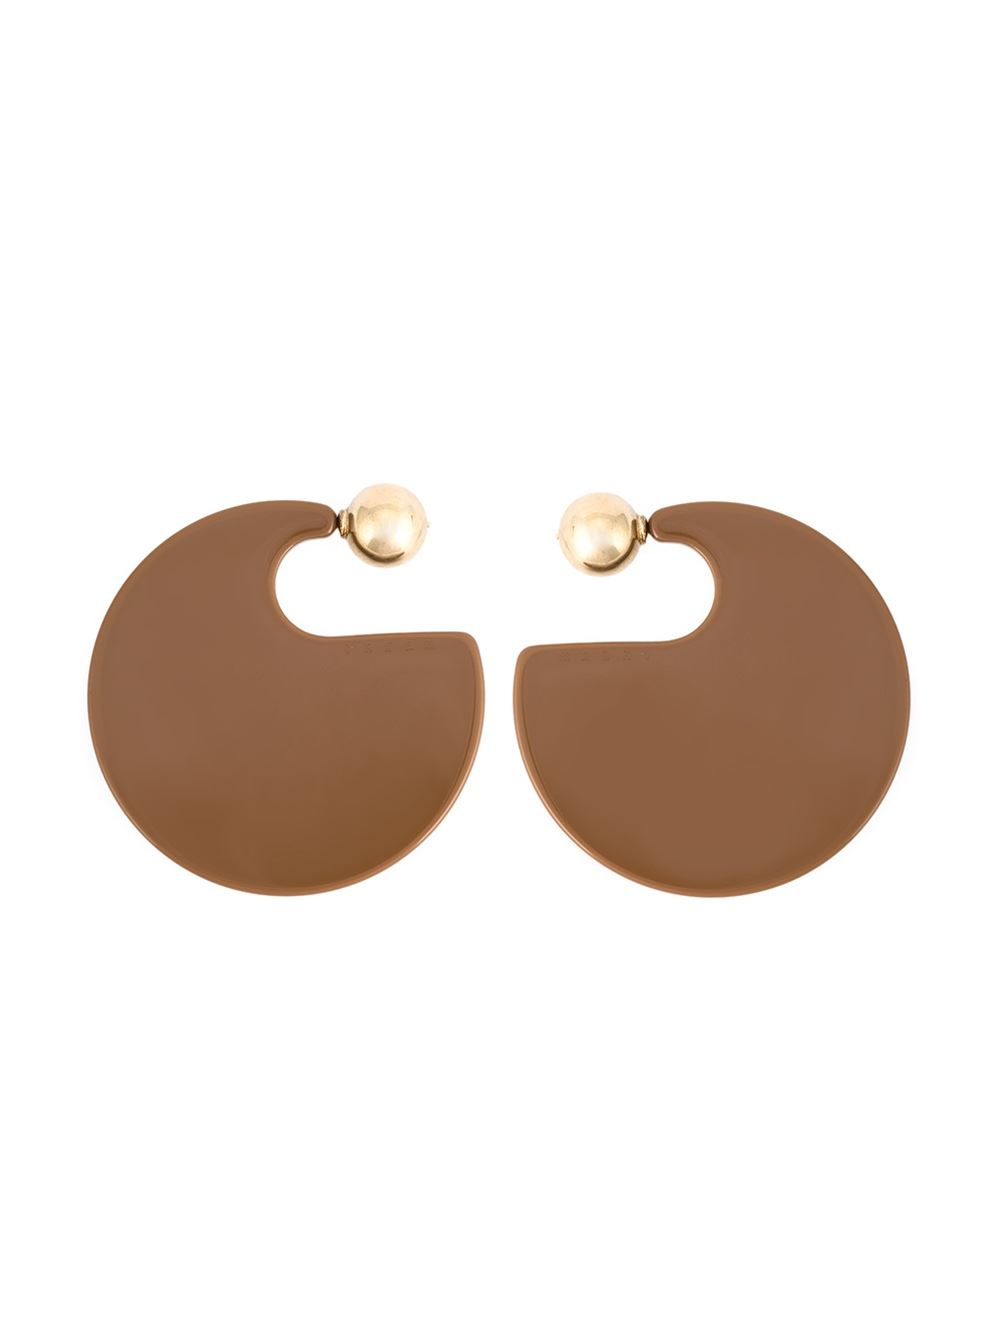 Marni Resin hoop earrings cJ2bMBwGlz